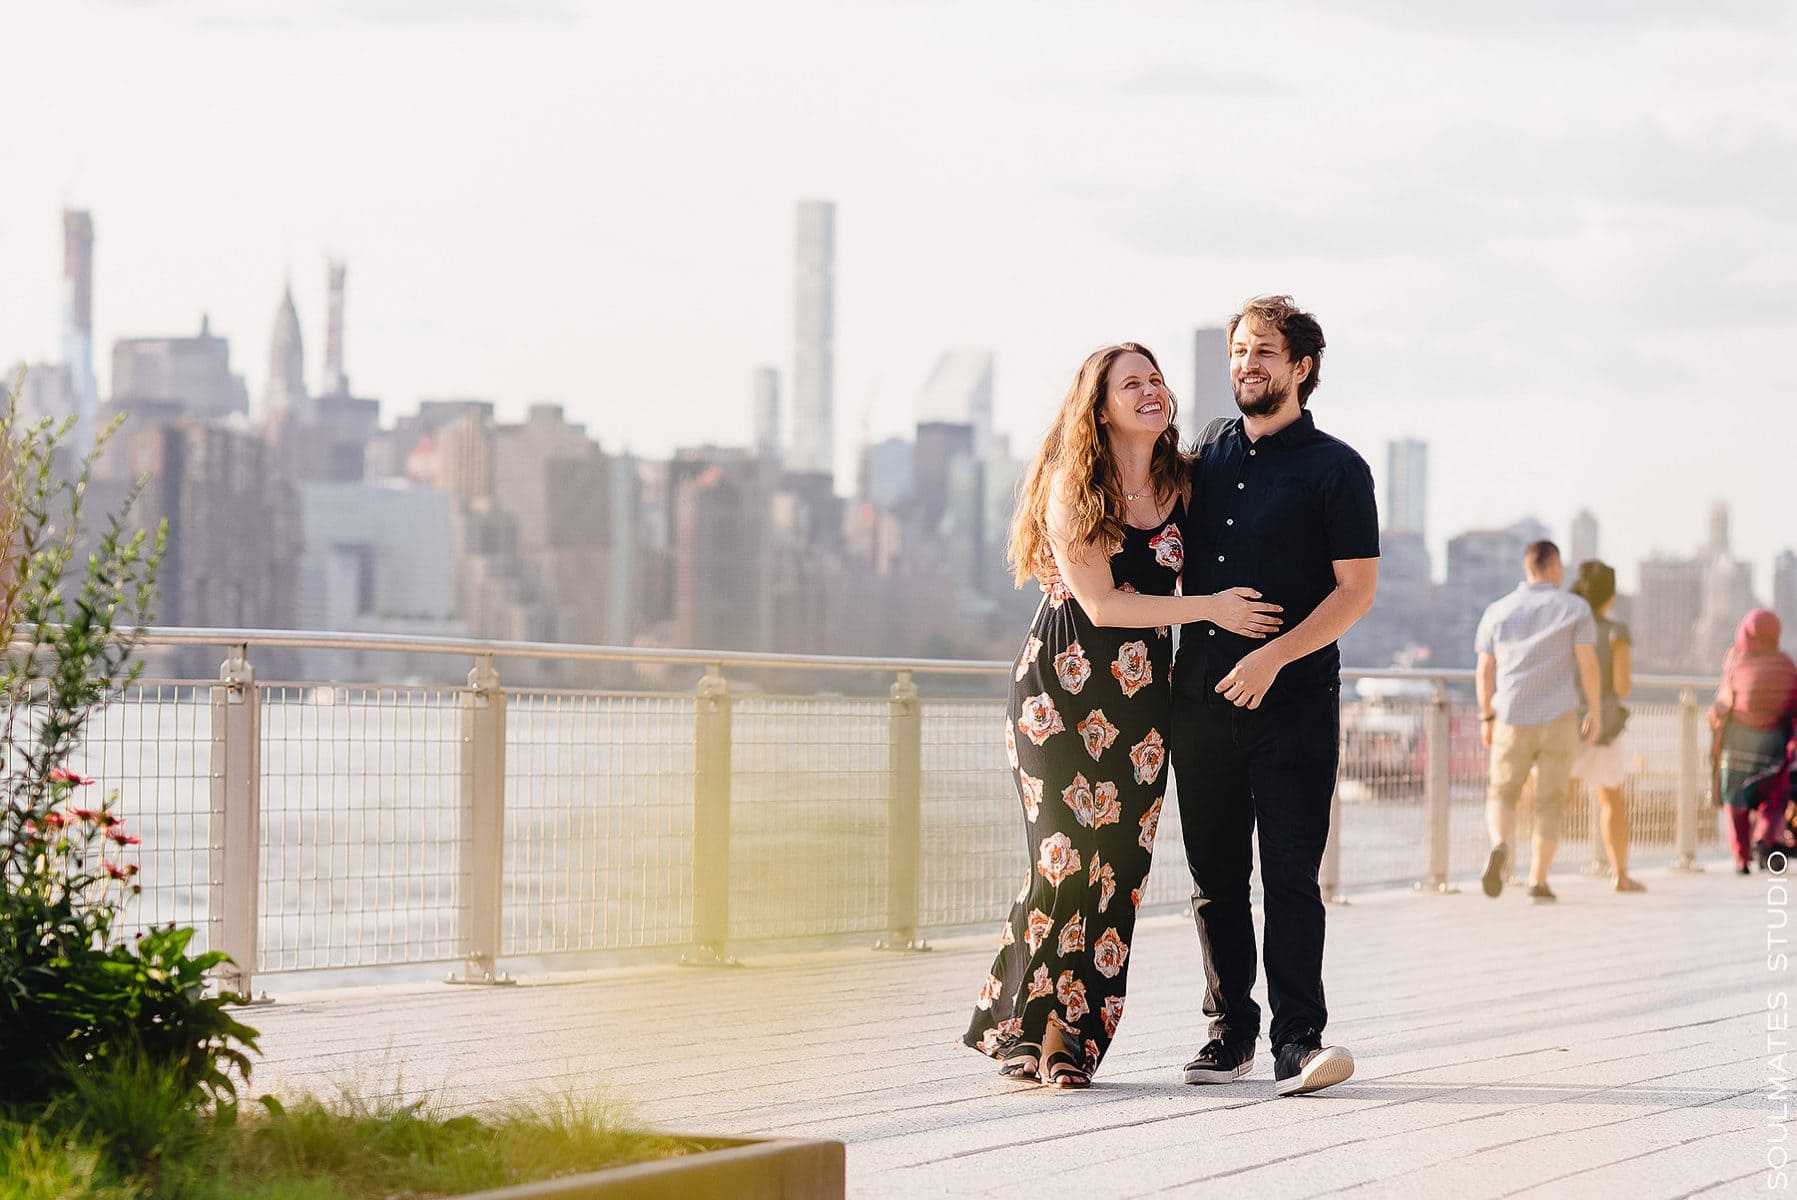 Williamsburg Domino Park Engagement Session Couple